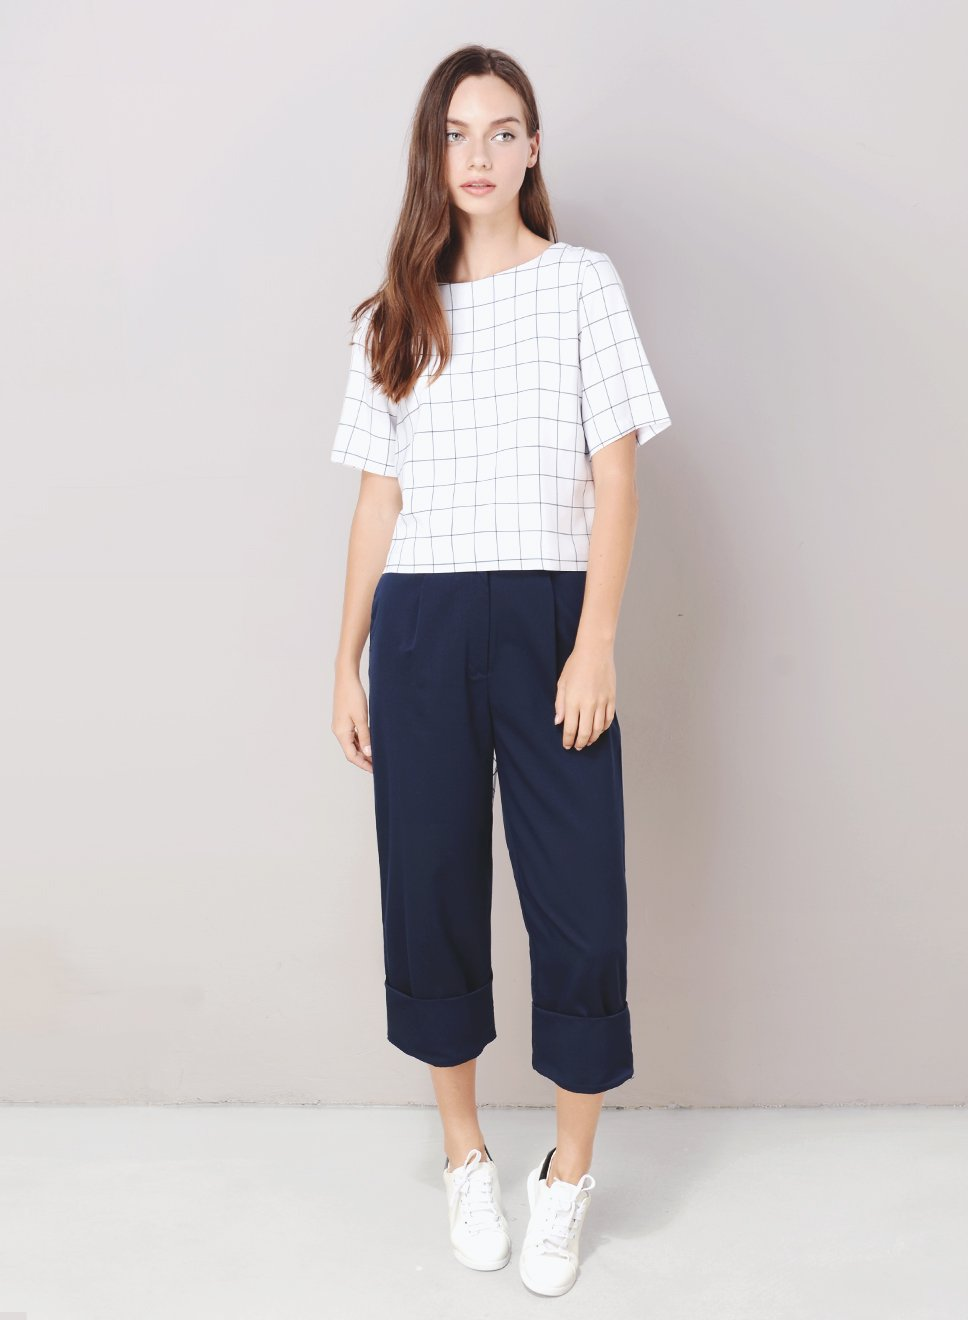 ILLUSION Tie Back Grid Top (White) at $ 21.50 only sold at And Well Dressed Online Fashion Store Singapore